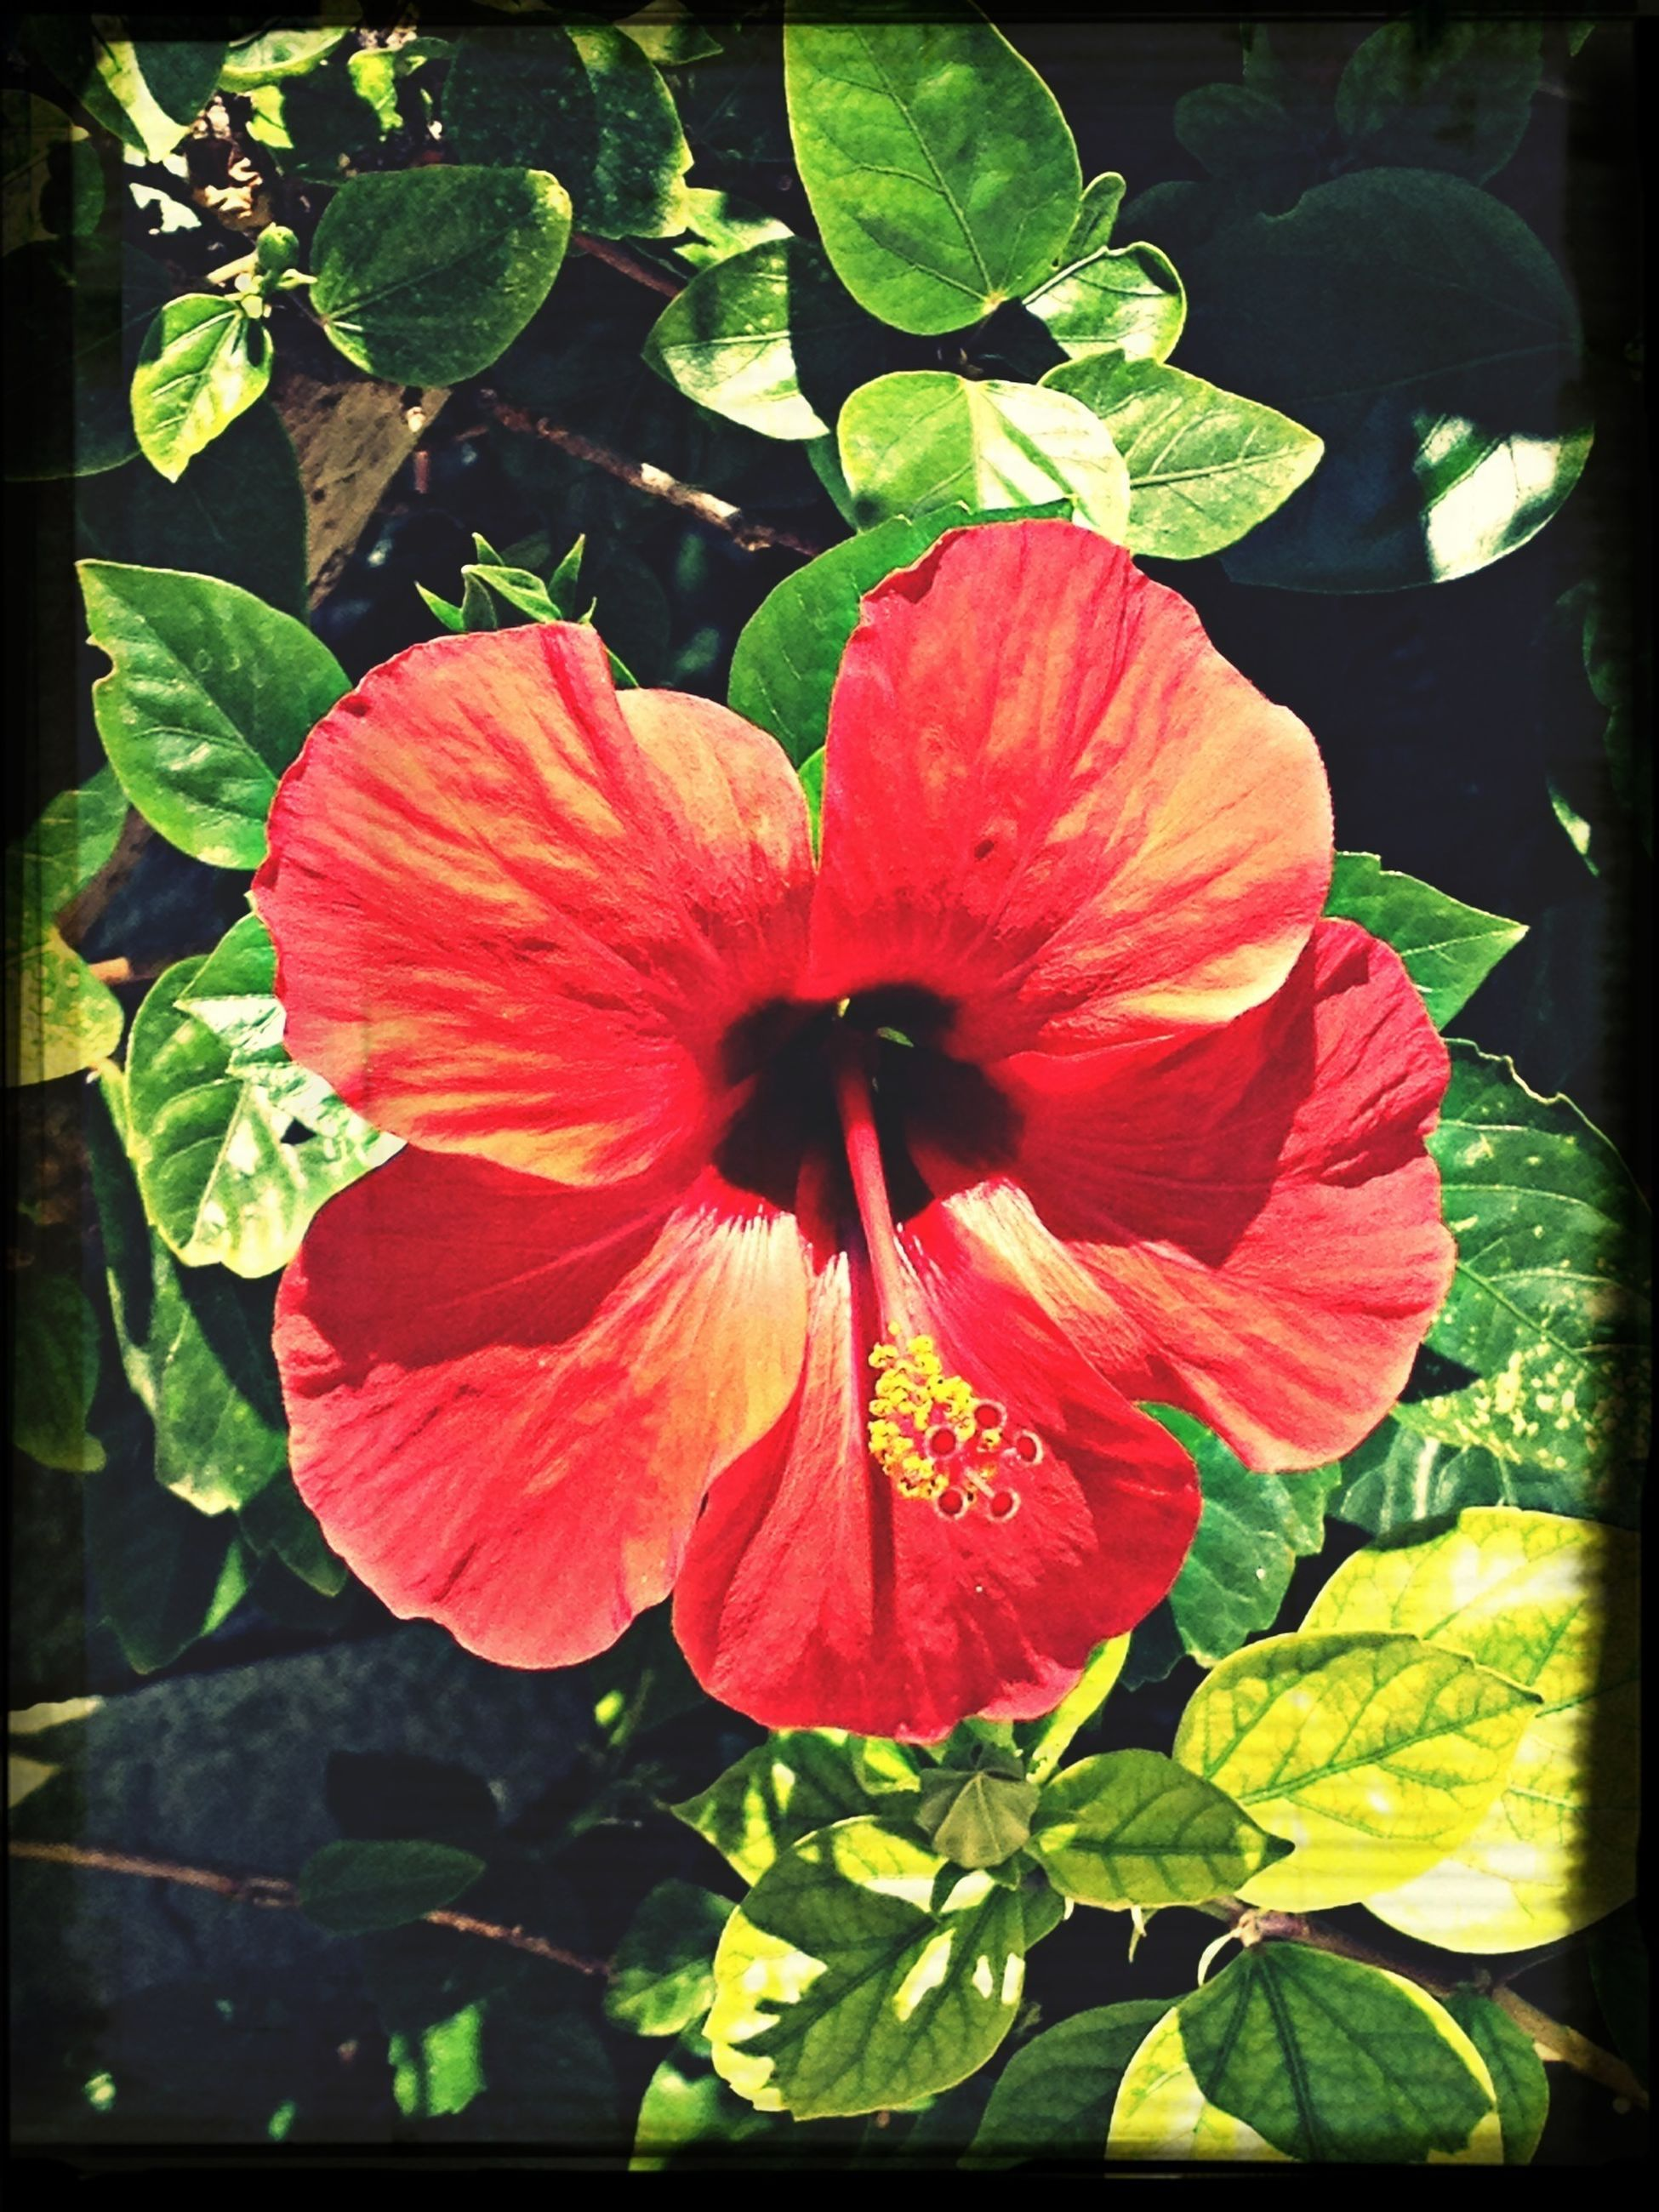 flower, petal, flower head, freshness, fragility, growth, beauty in nature, leaf, single flower, blooming, hibiscus, red, close-up, plant, nature, stamen, pollen, high angle view, in bloom, focus on foreground